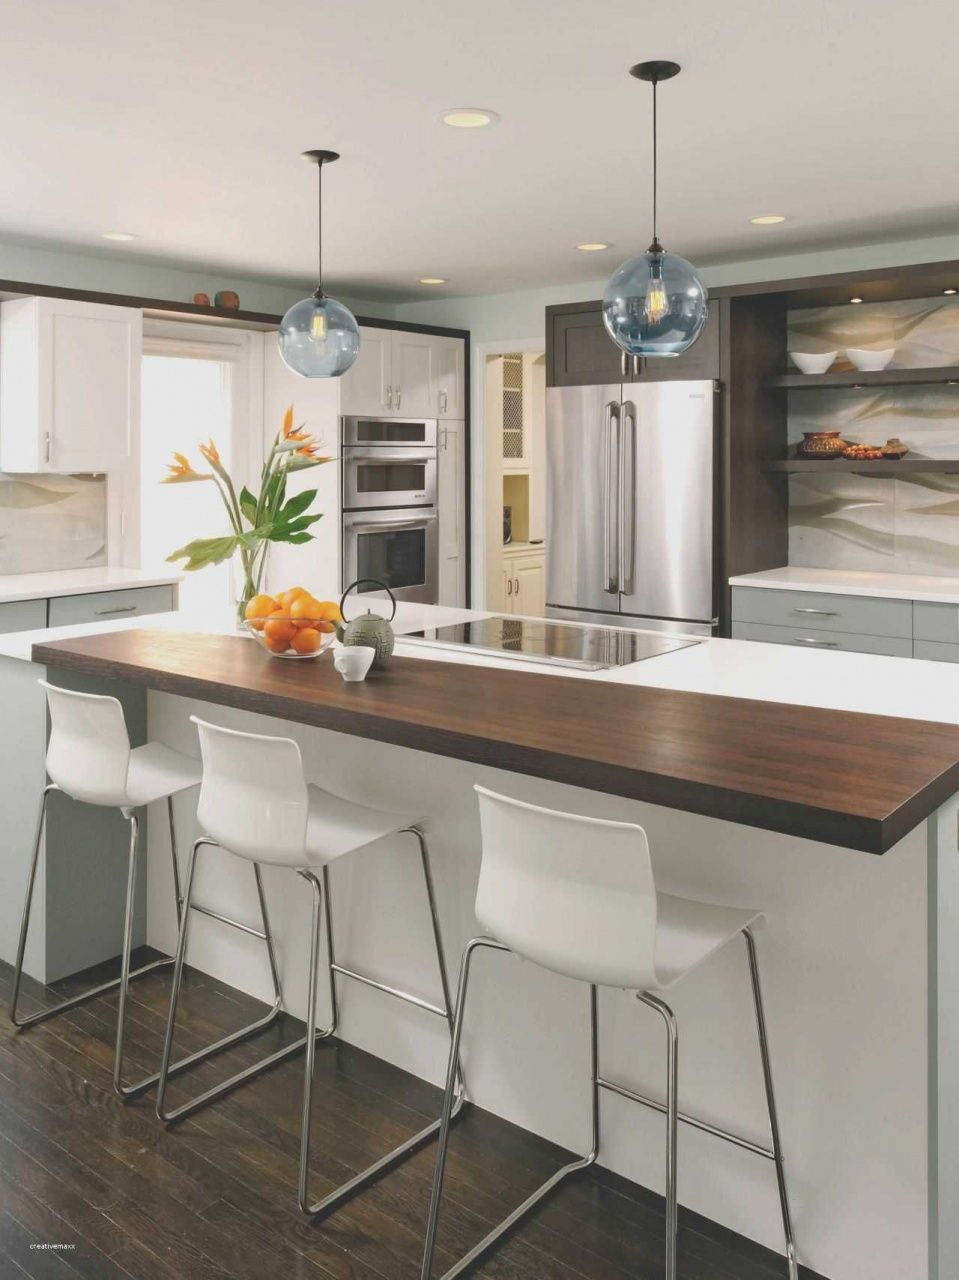 Kitchen Island With Table Extension In 2020 Small Kitchen Layouts Kitchen Design Small Kitchen Island With Bench Seating